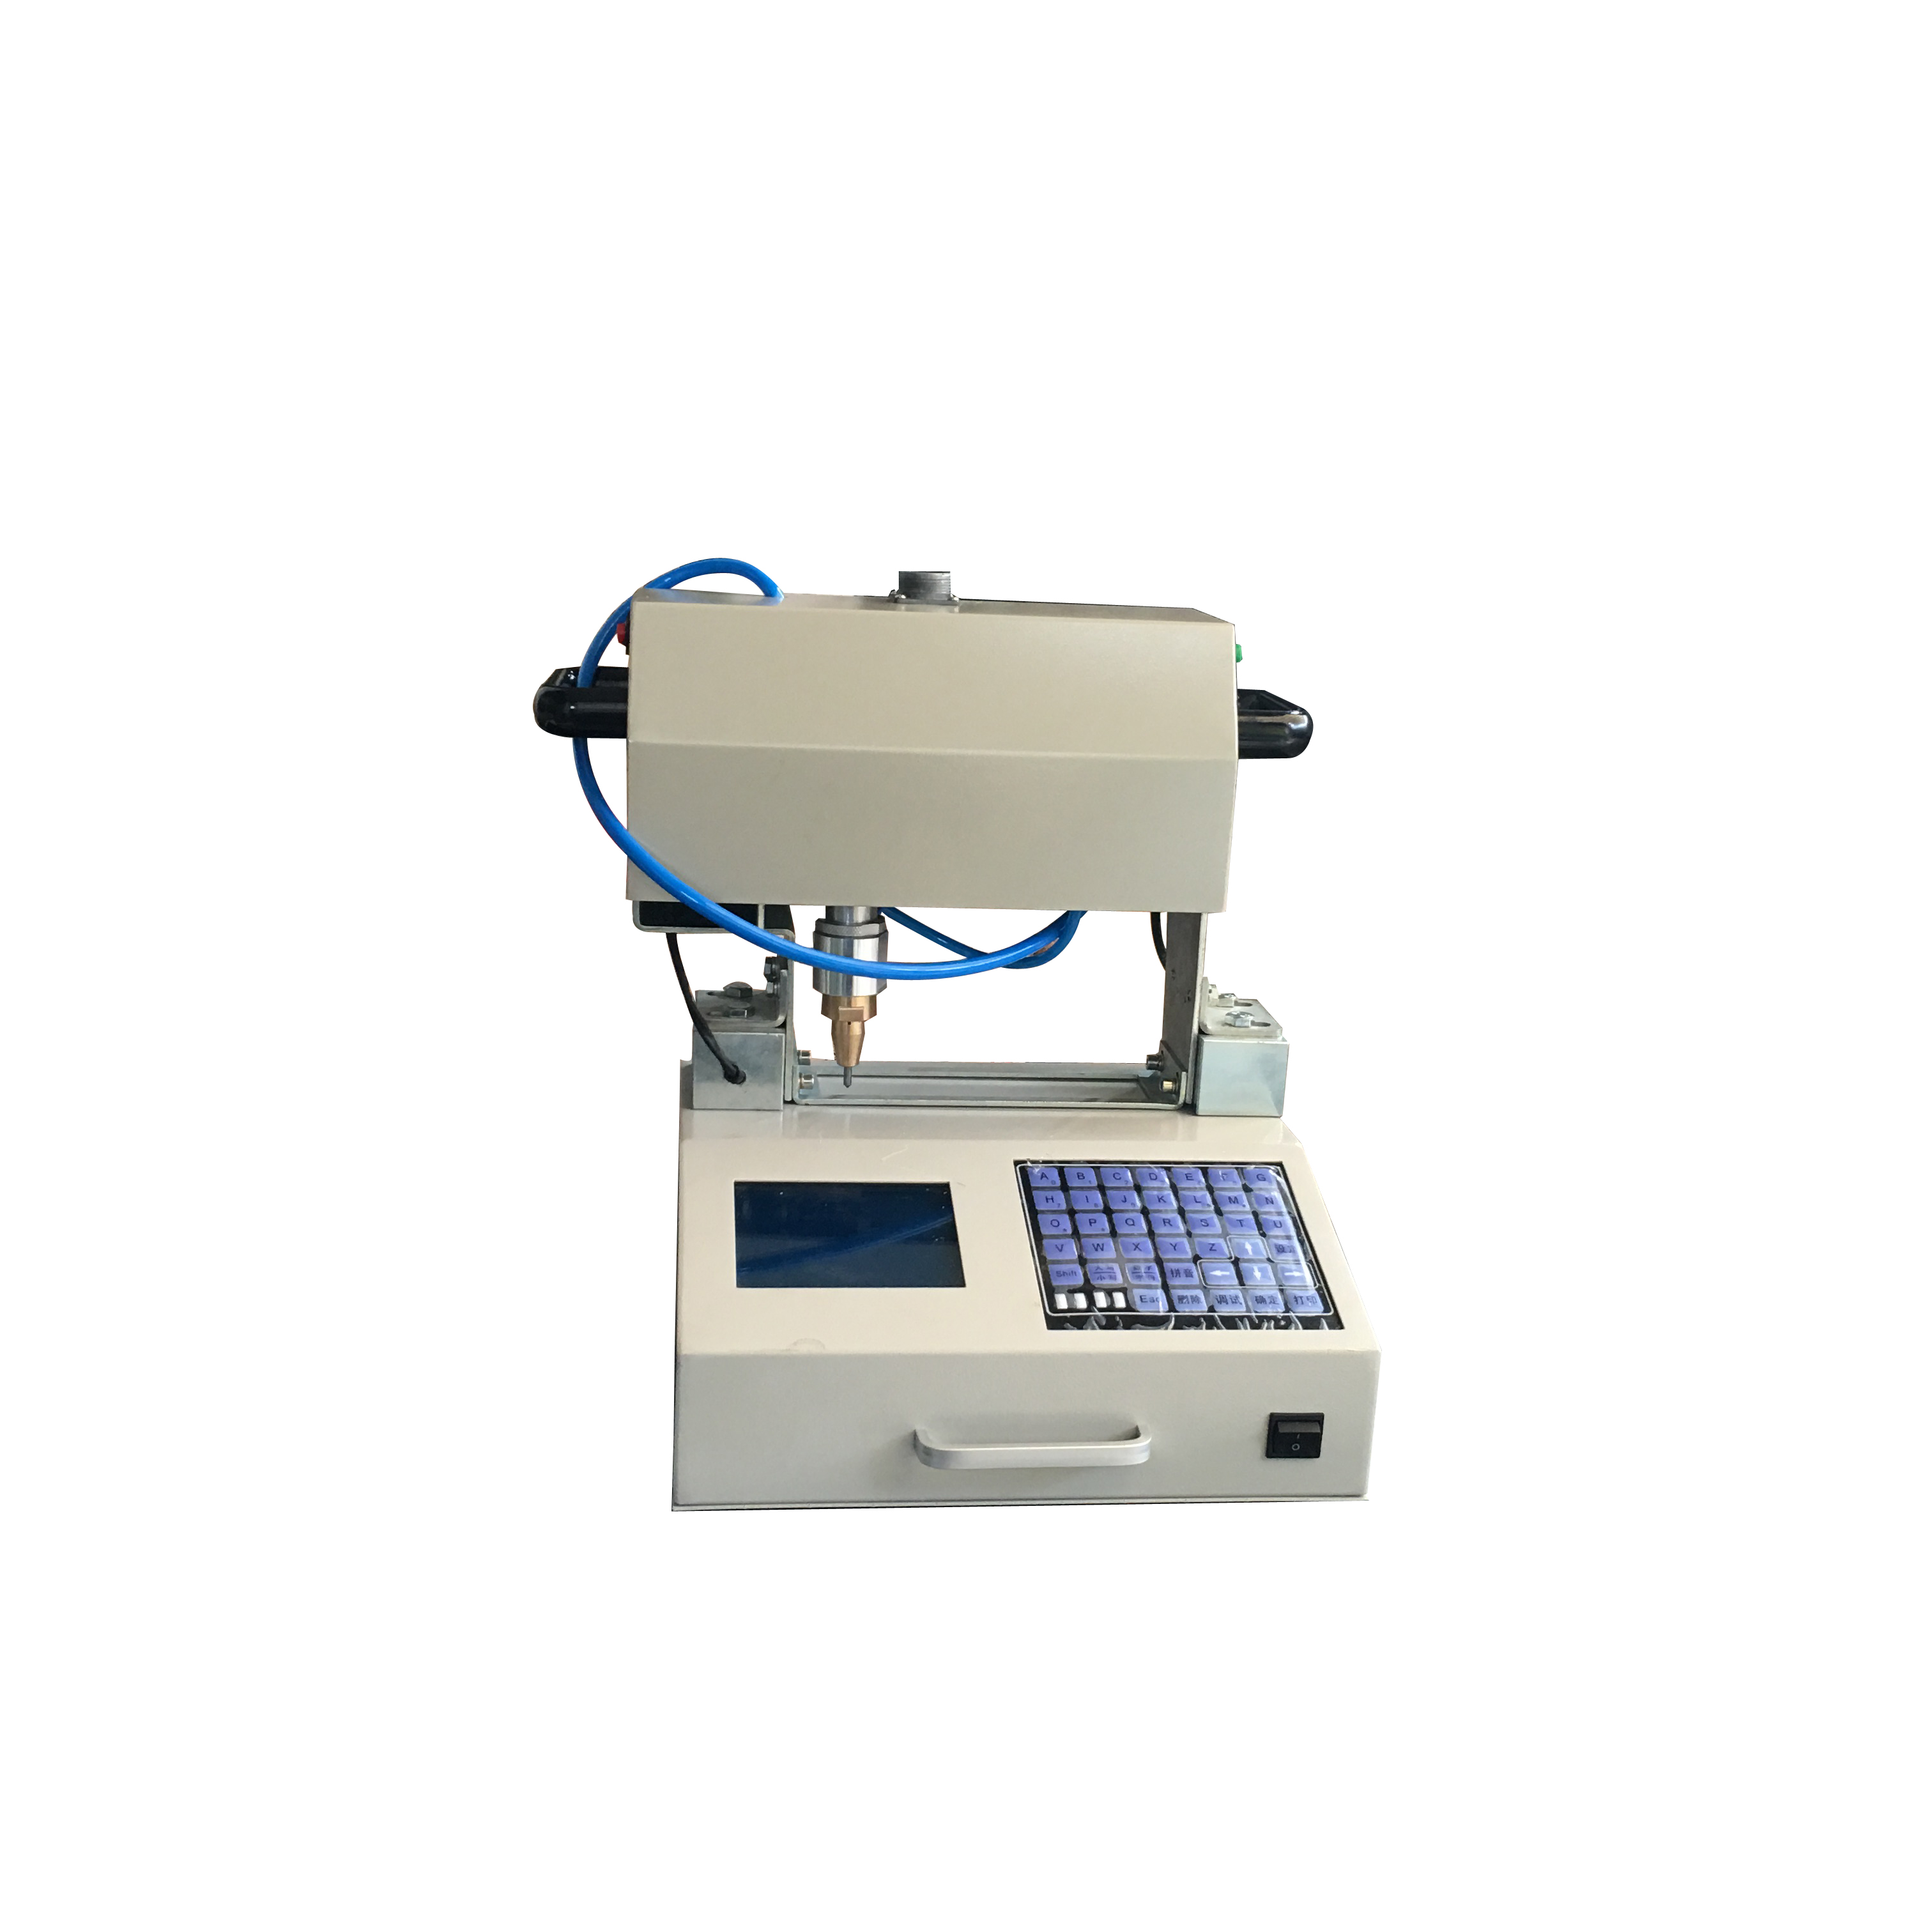 Factory direct metal printing equipment car frame number synchronous tracking pneumatic marking machine